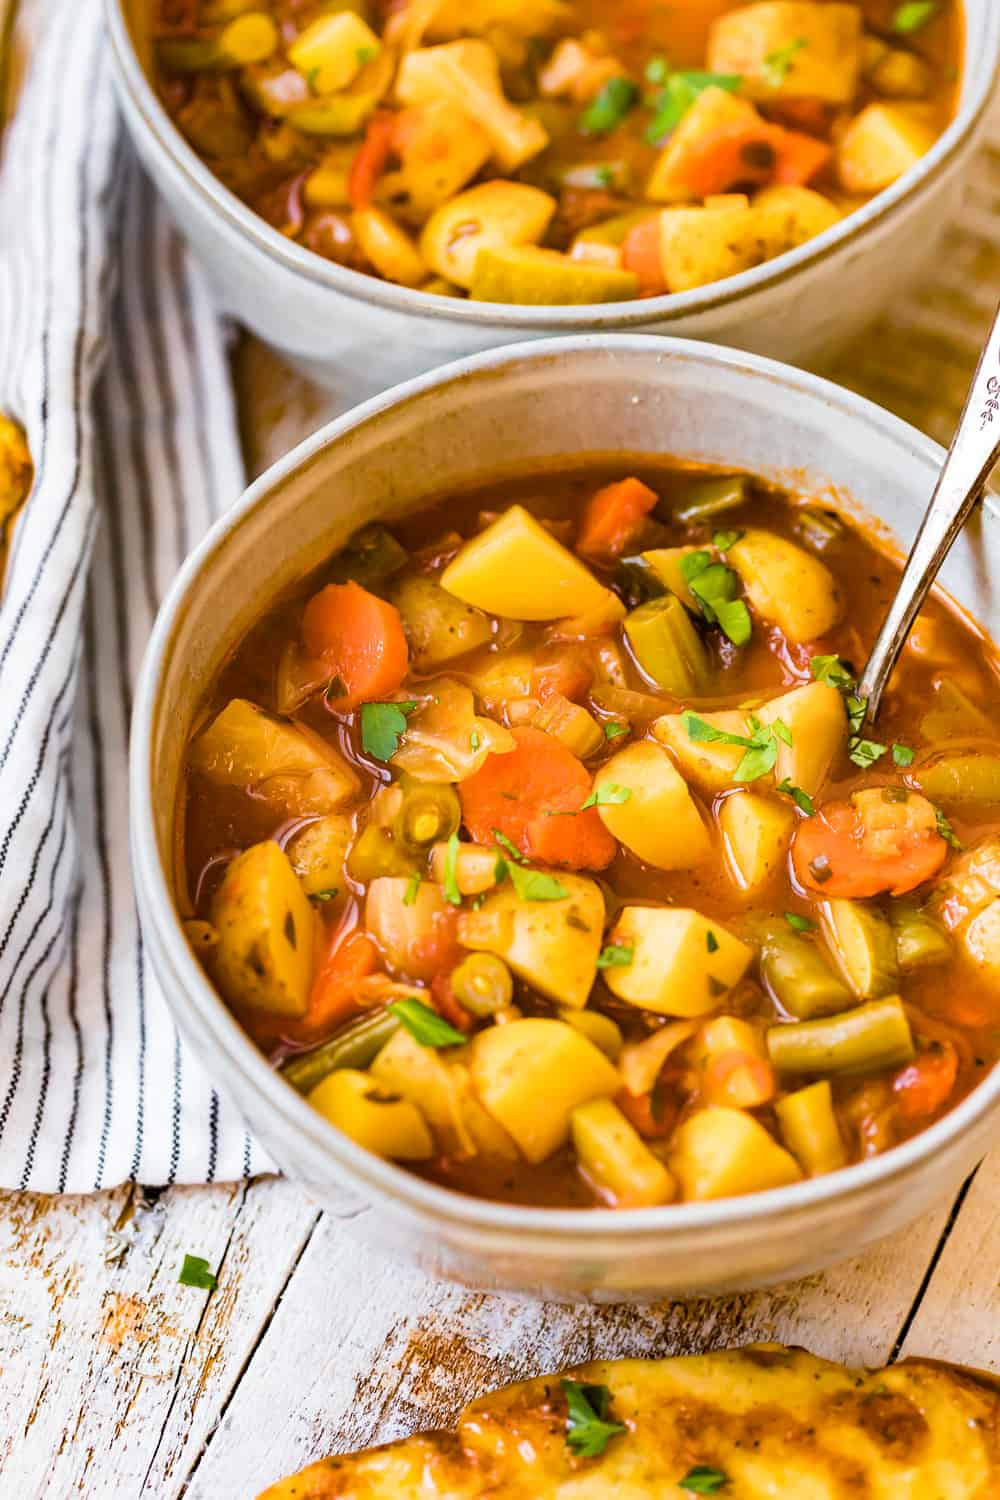 Two bowls of Hearty Vegetable soup